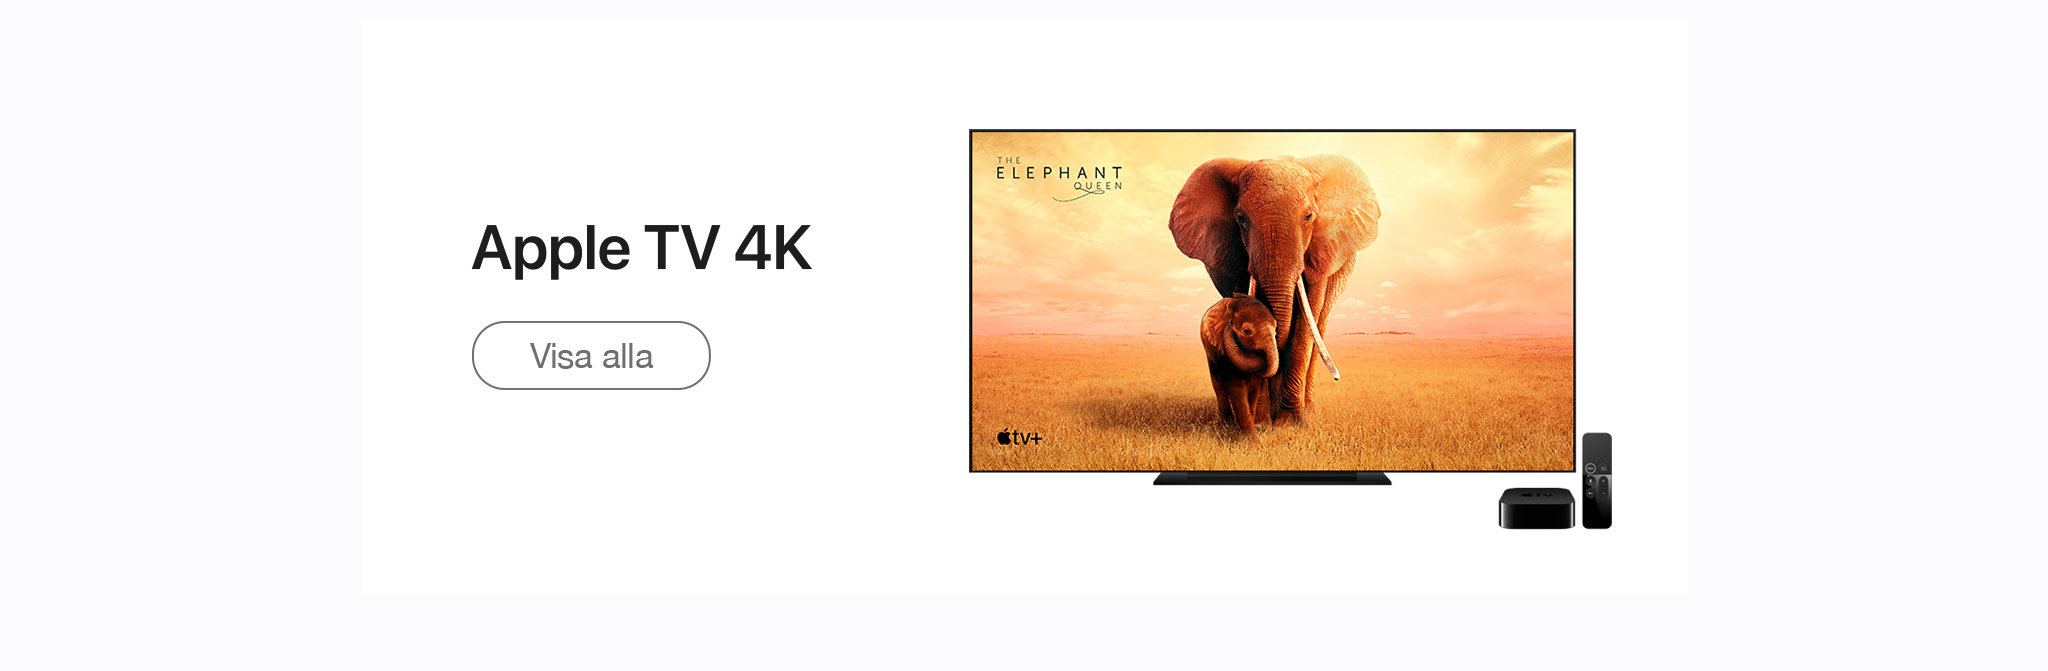 Få Apple TV+ gratis i ett år med en ny Apple TV